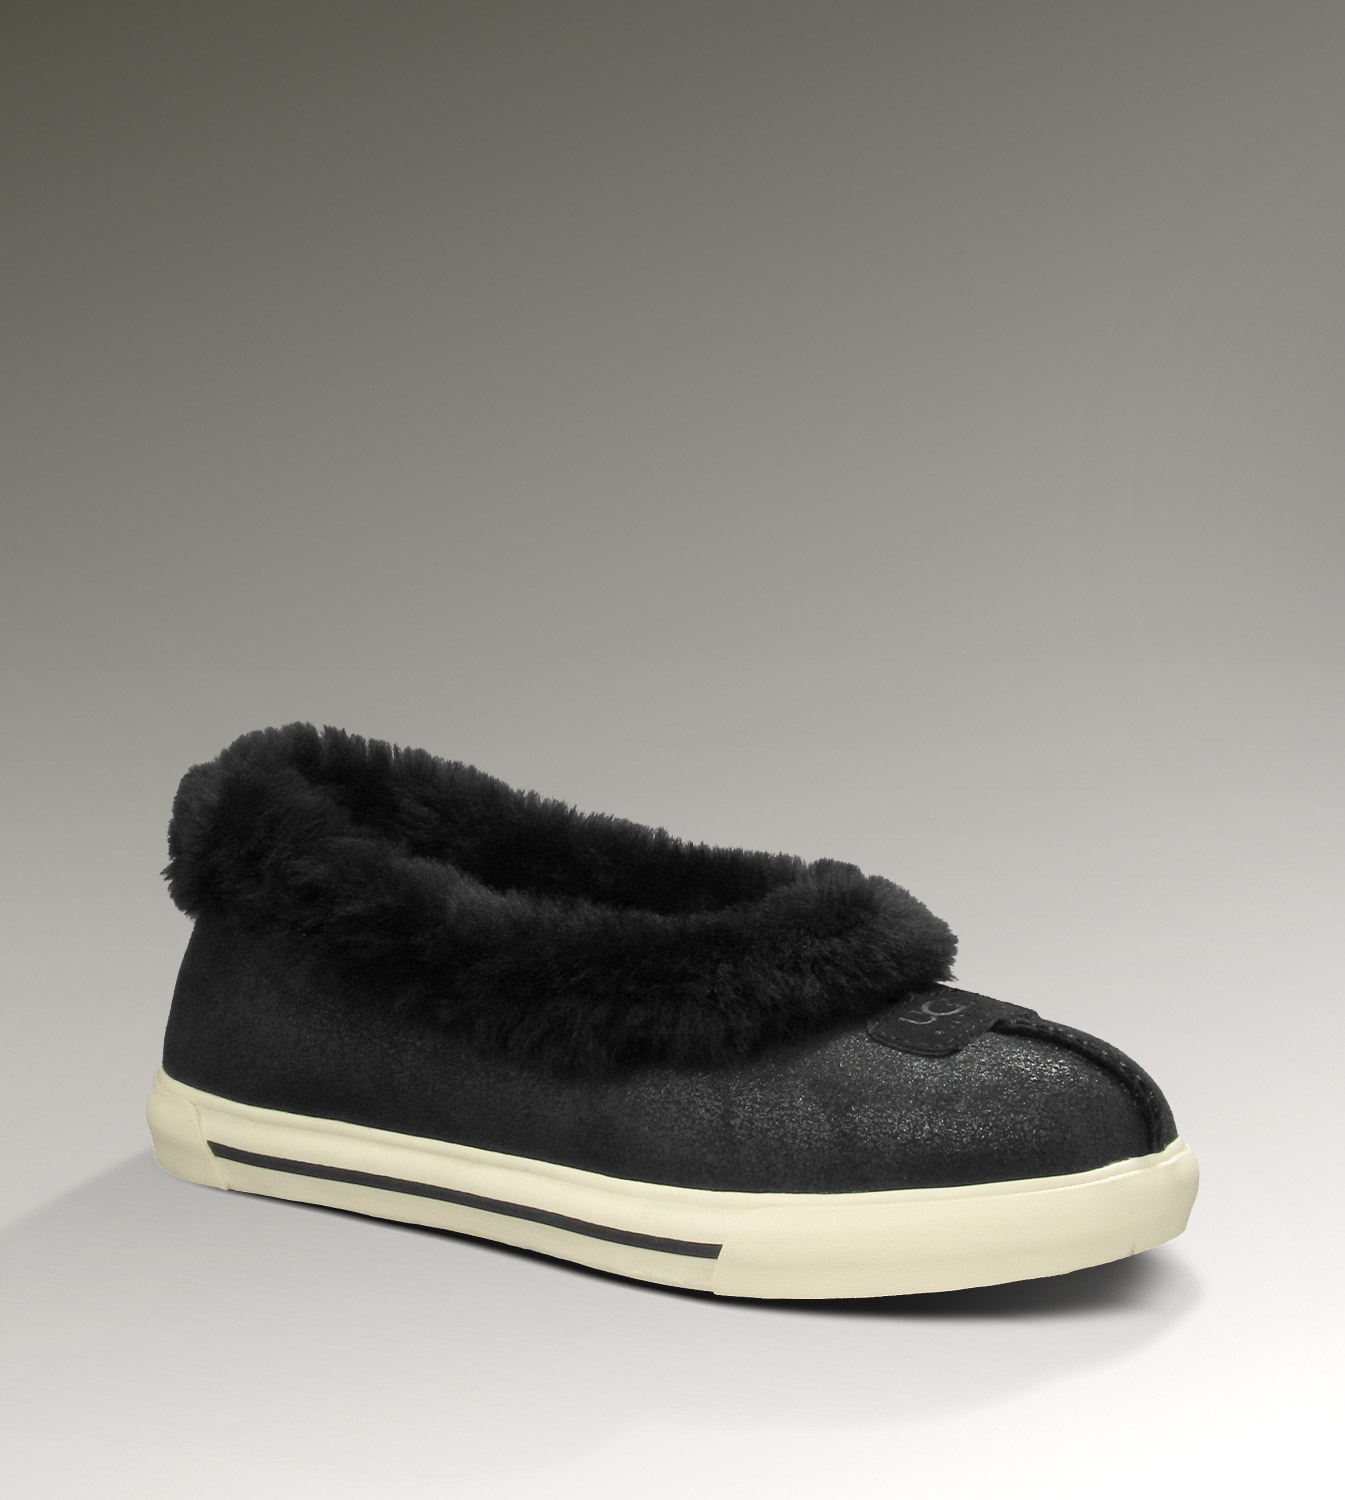 UGG Rylan Bomber 3048 Jacket Black Slippers